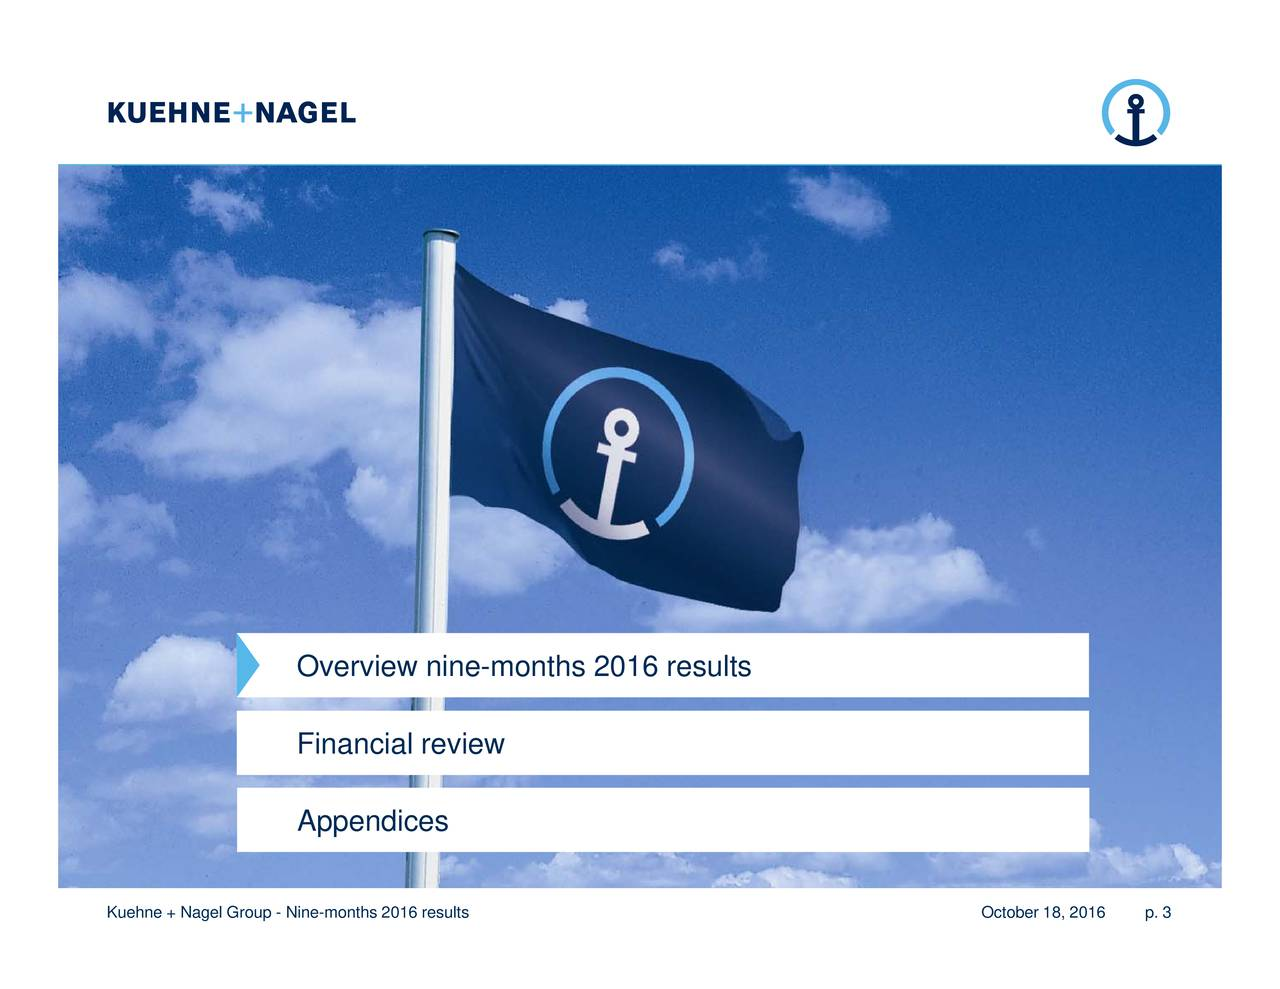 October 18, 2016 Overview nine-months 2016 results Kuehne + Nagel Group - Nine-months 2016 results